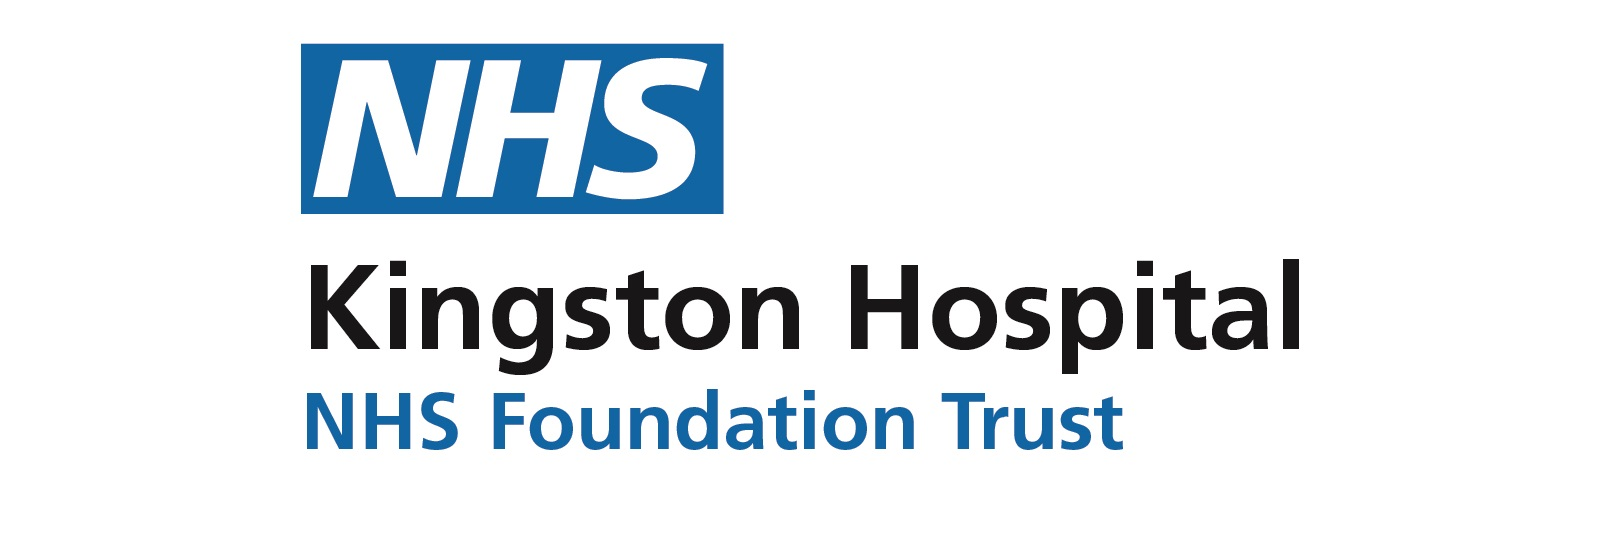 Kingston Hospitals NHS Foundation Trust Logo